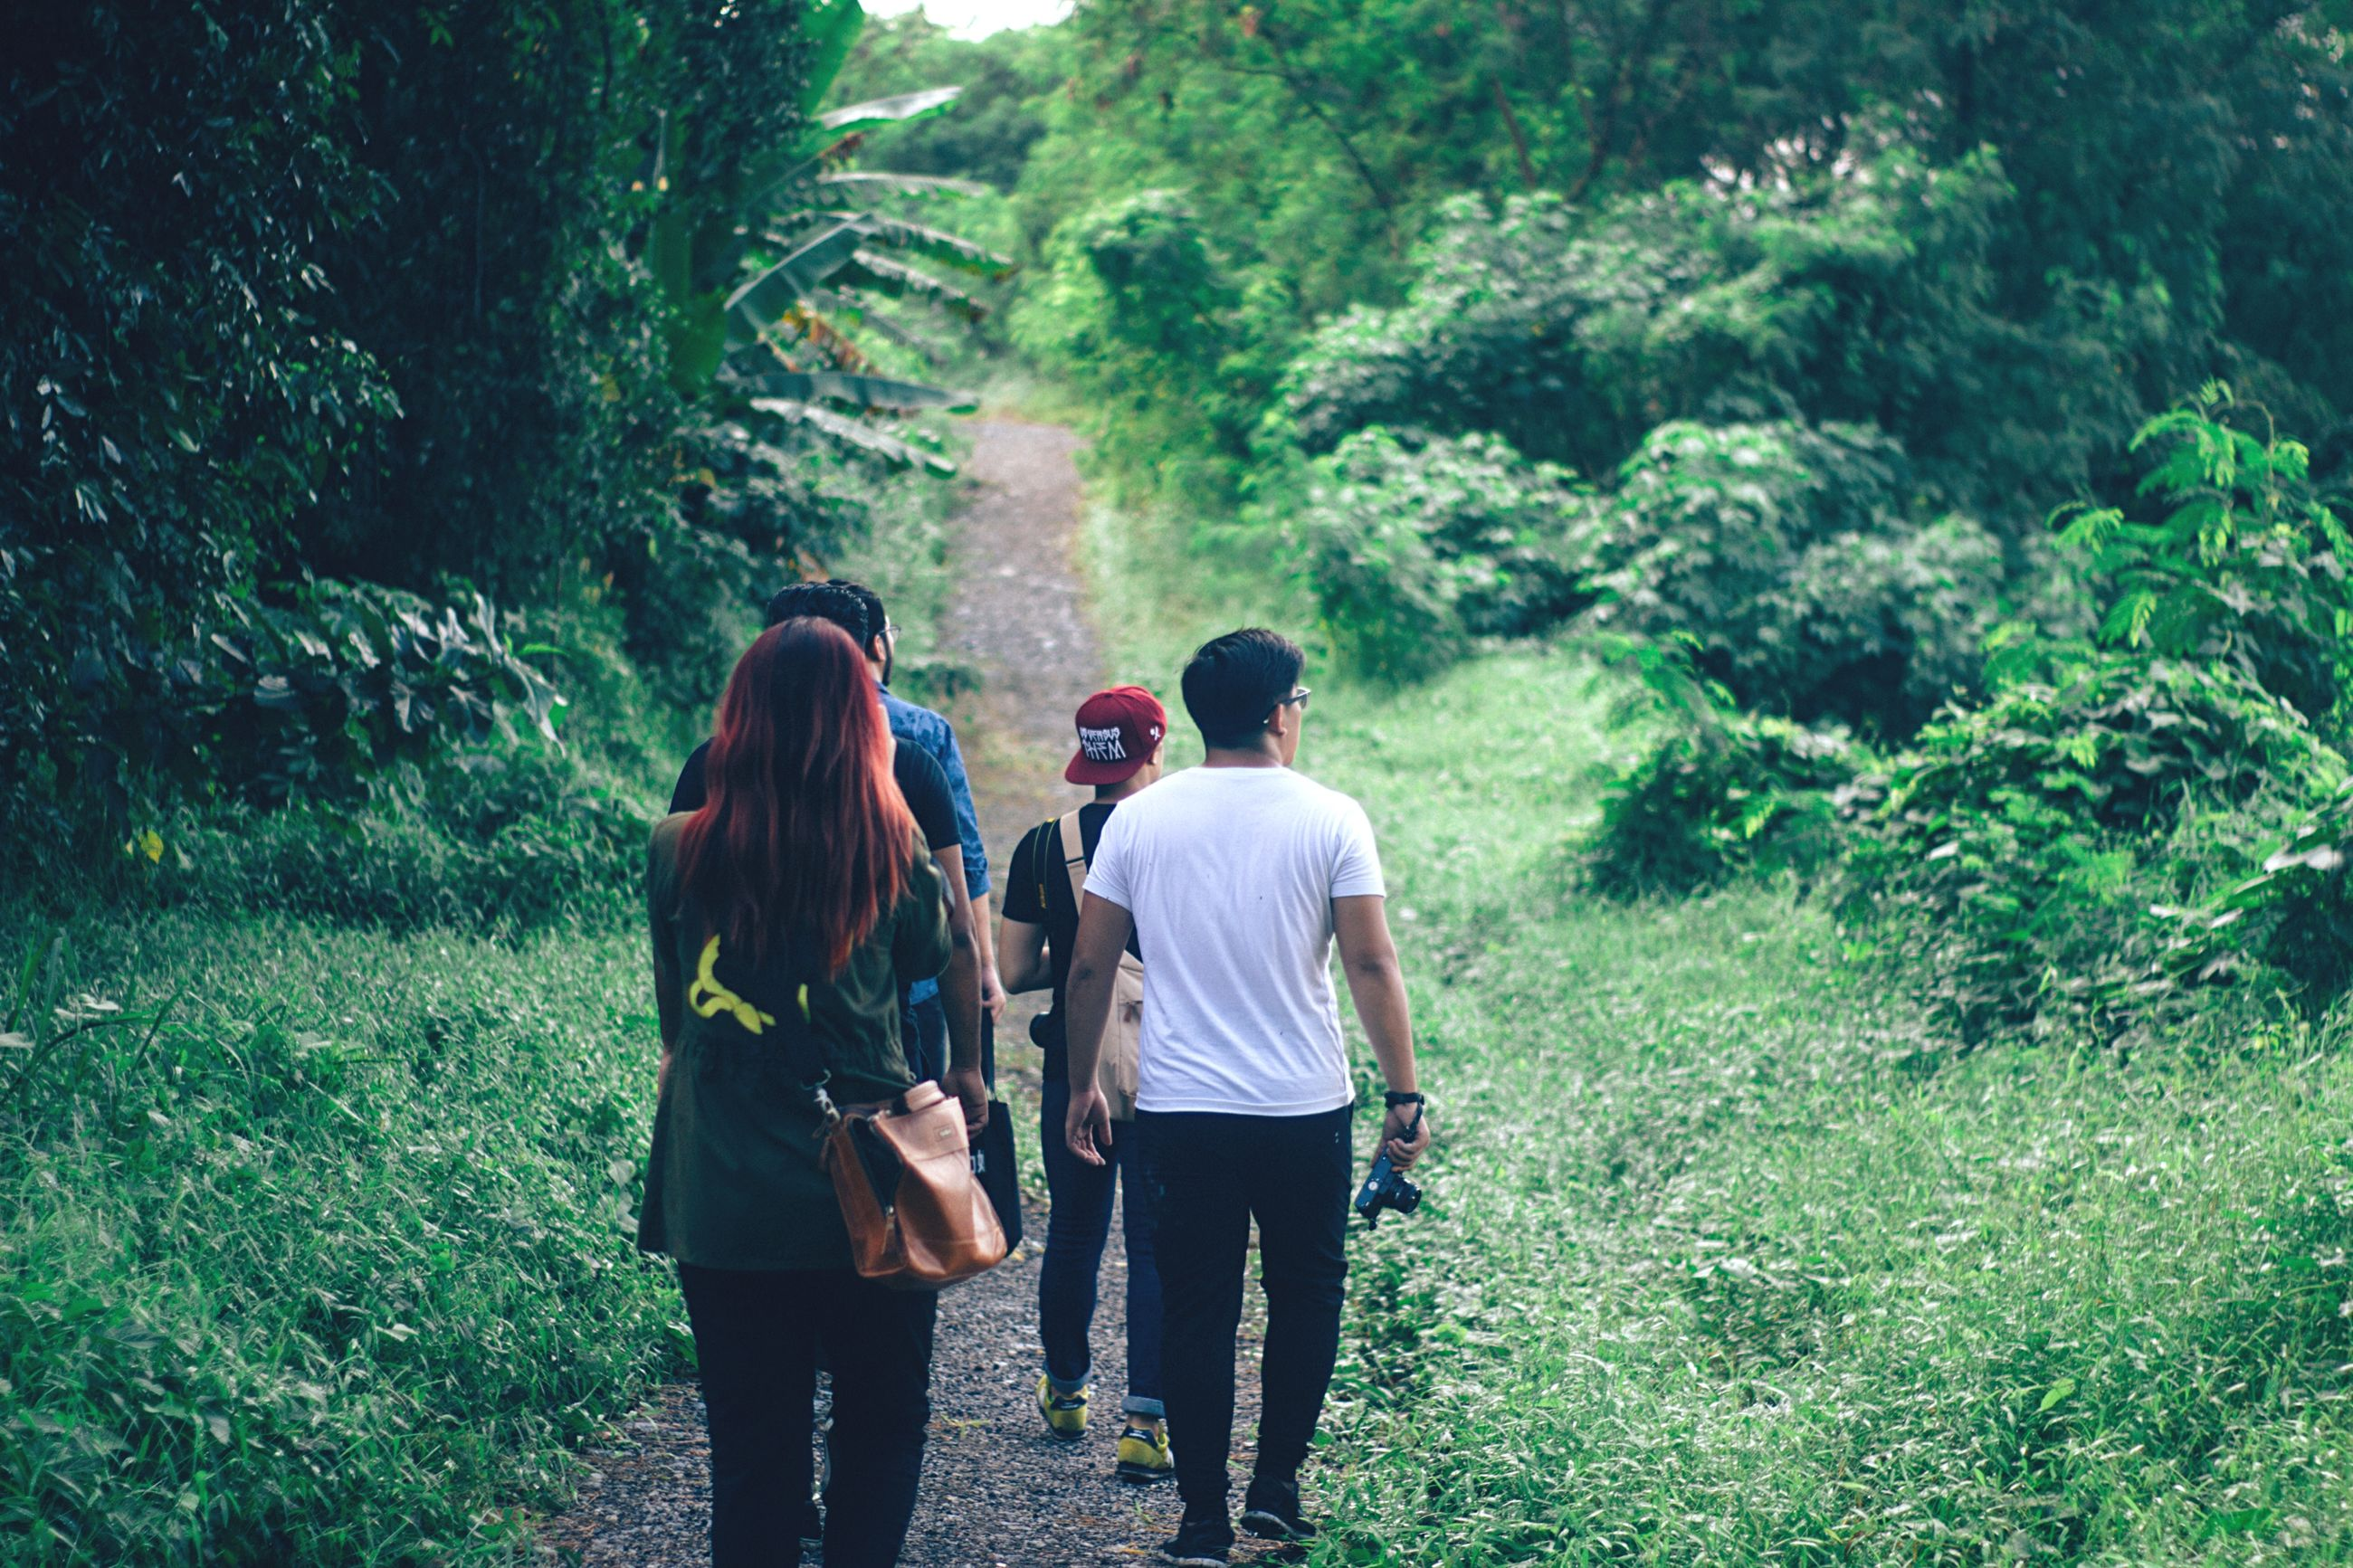 rear view, lifestyles, leisure activity, tree, togetherness, men, bonding, full length, casual clothing, love, person, friendship, walking, forest, nature, green color, standing